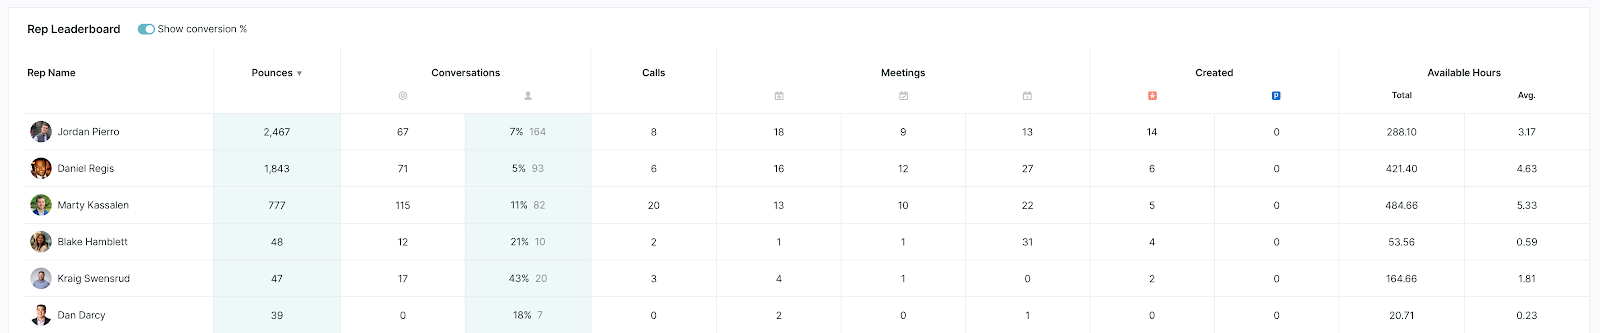 Table with rows of reps showing statistics of their engagement with site visitors